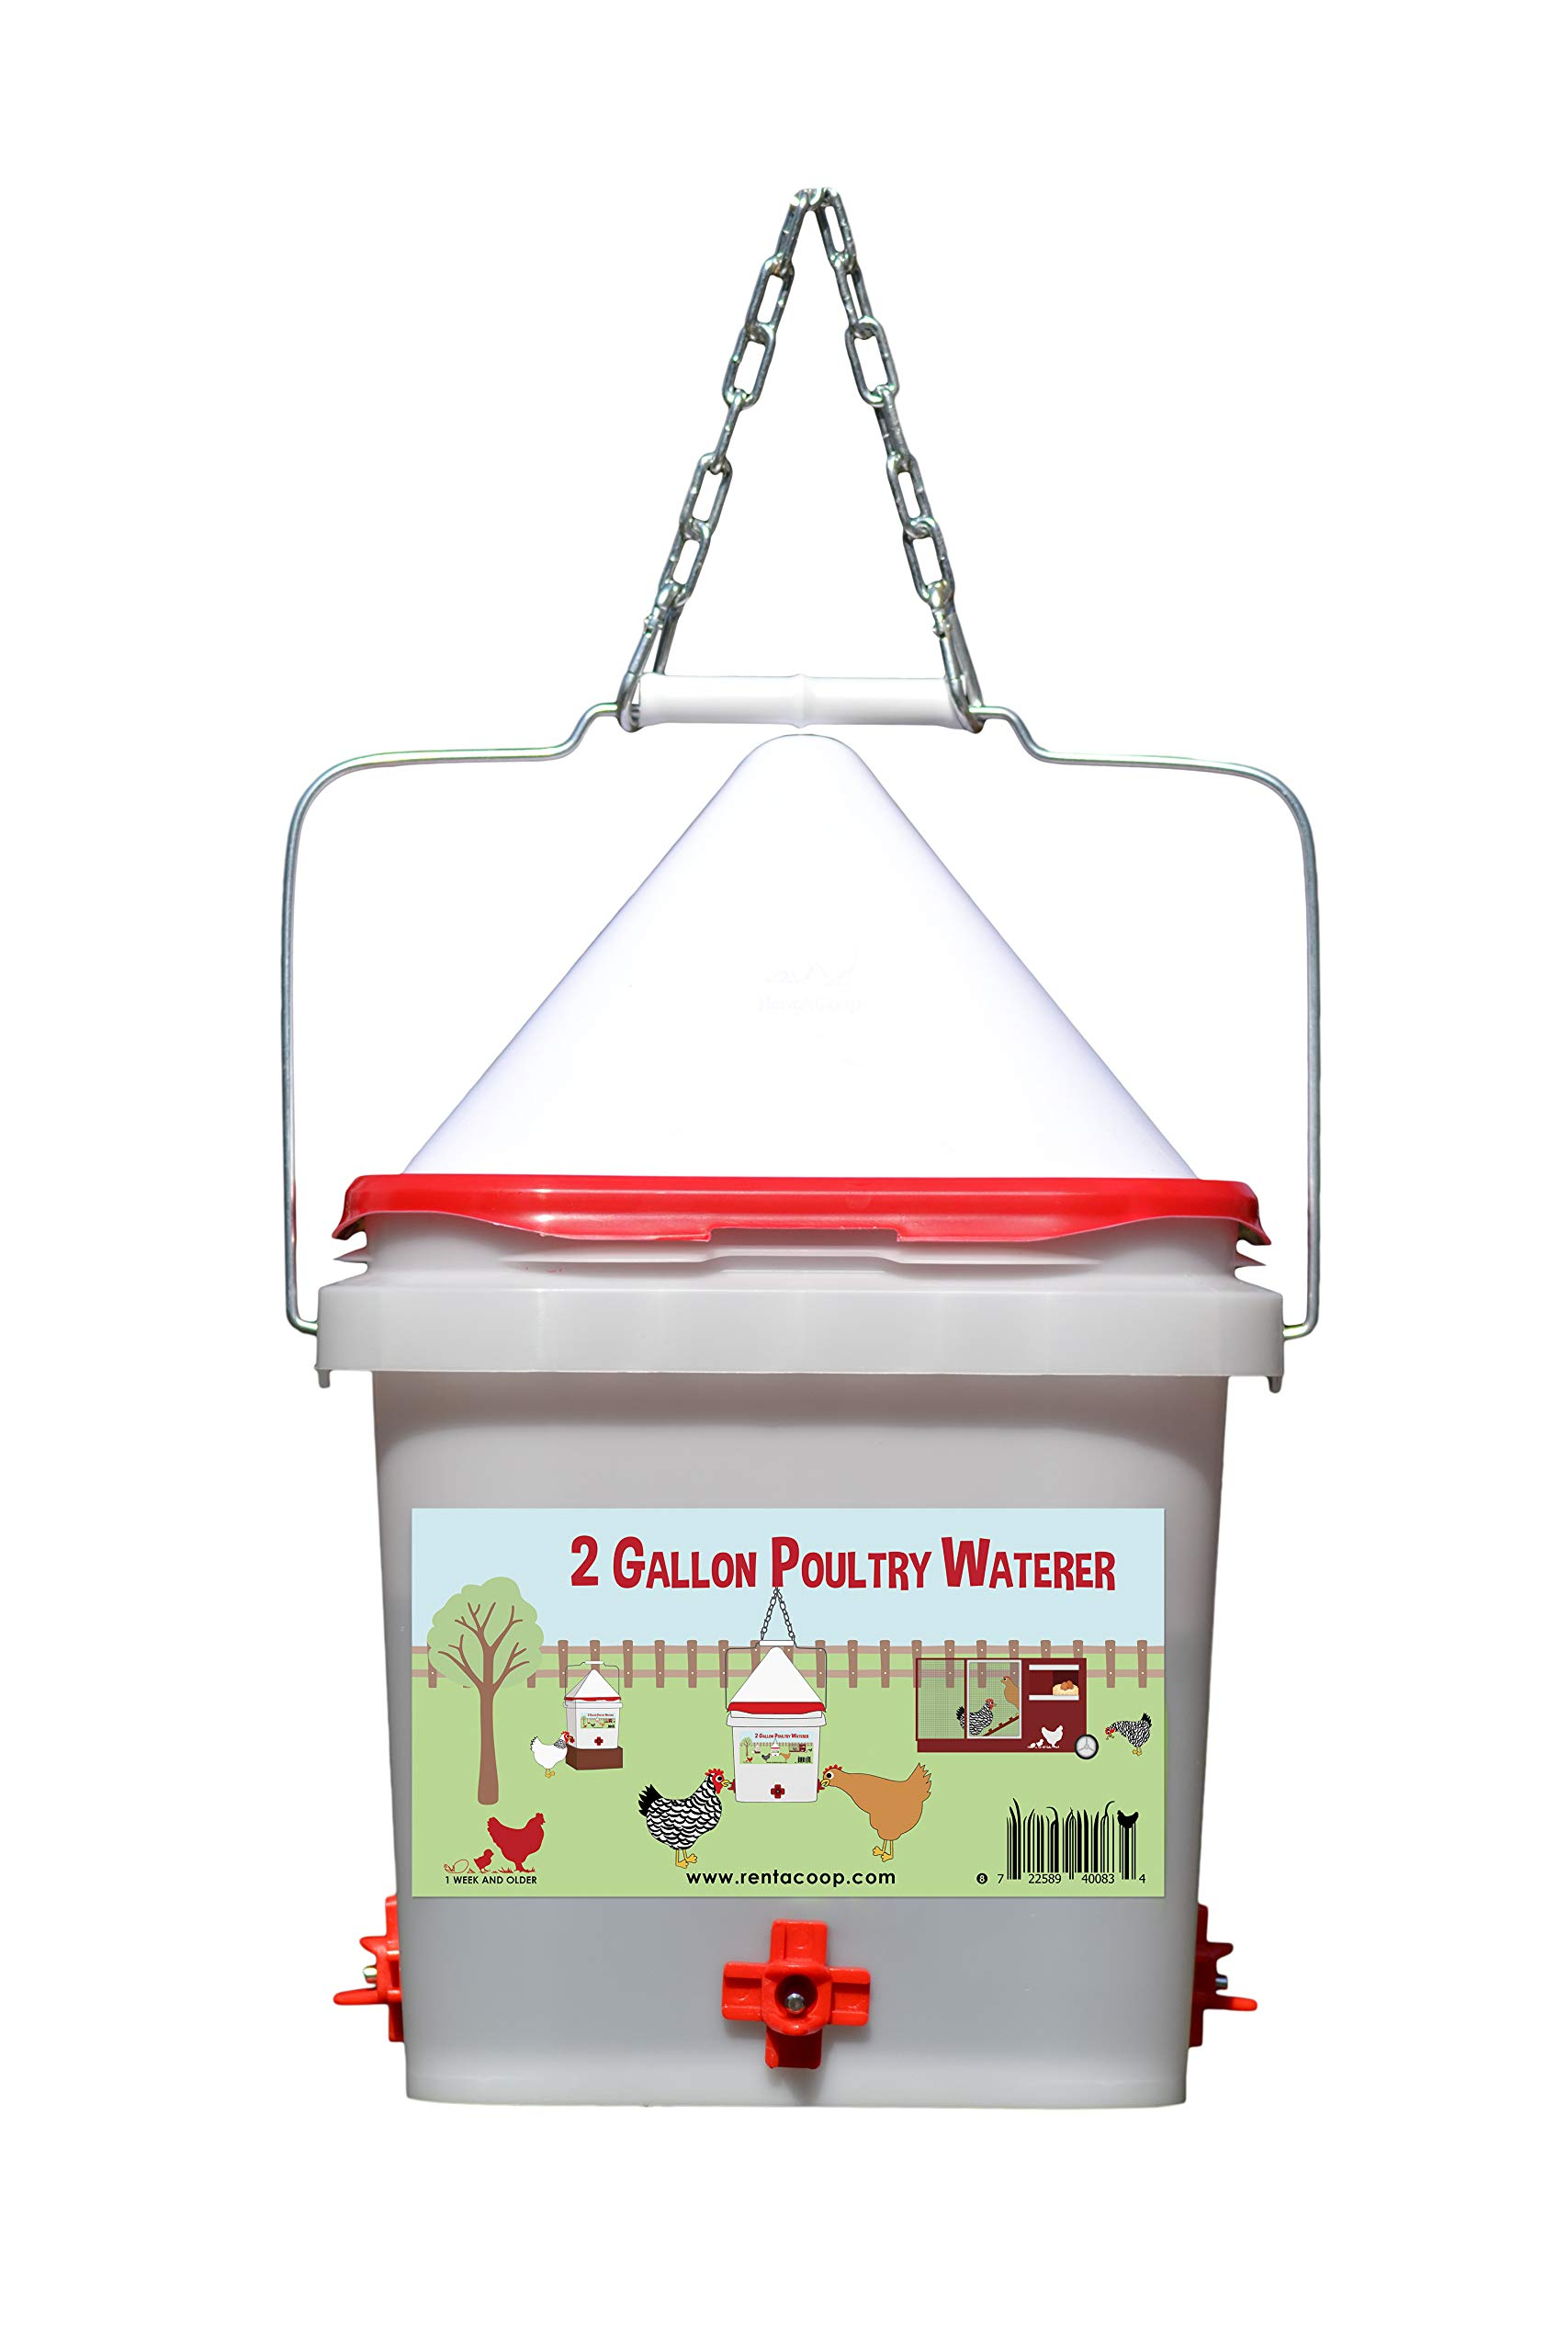 2 Gallon Chicken Waterer - Horizontal Nipple Setup (4 Nipple) by RentACoop